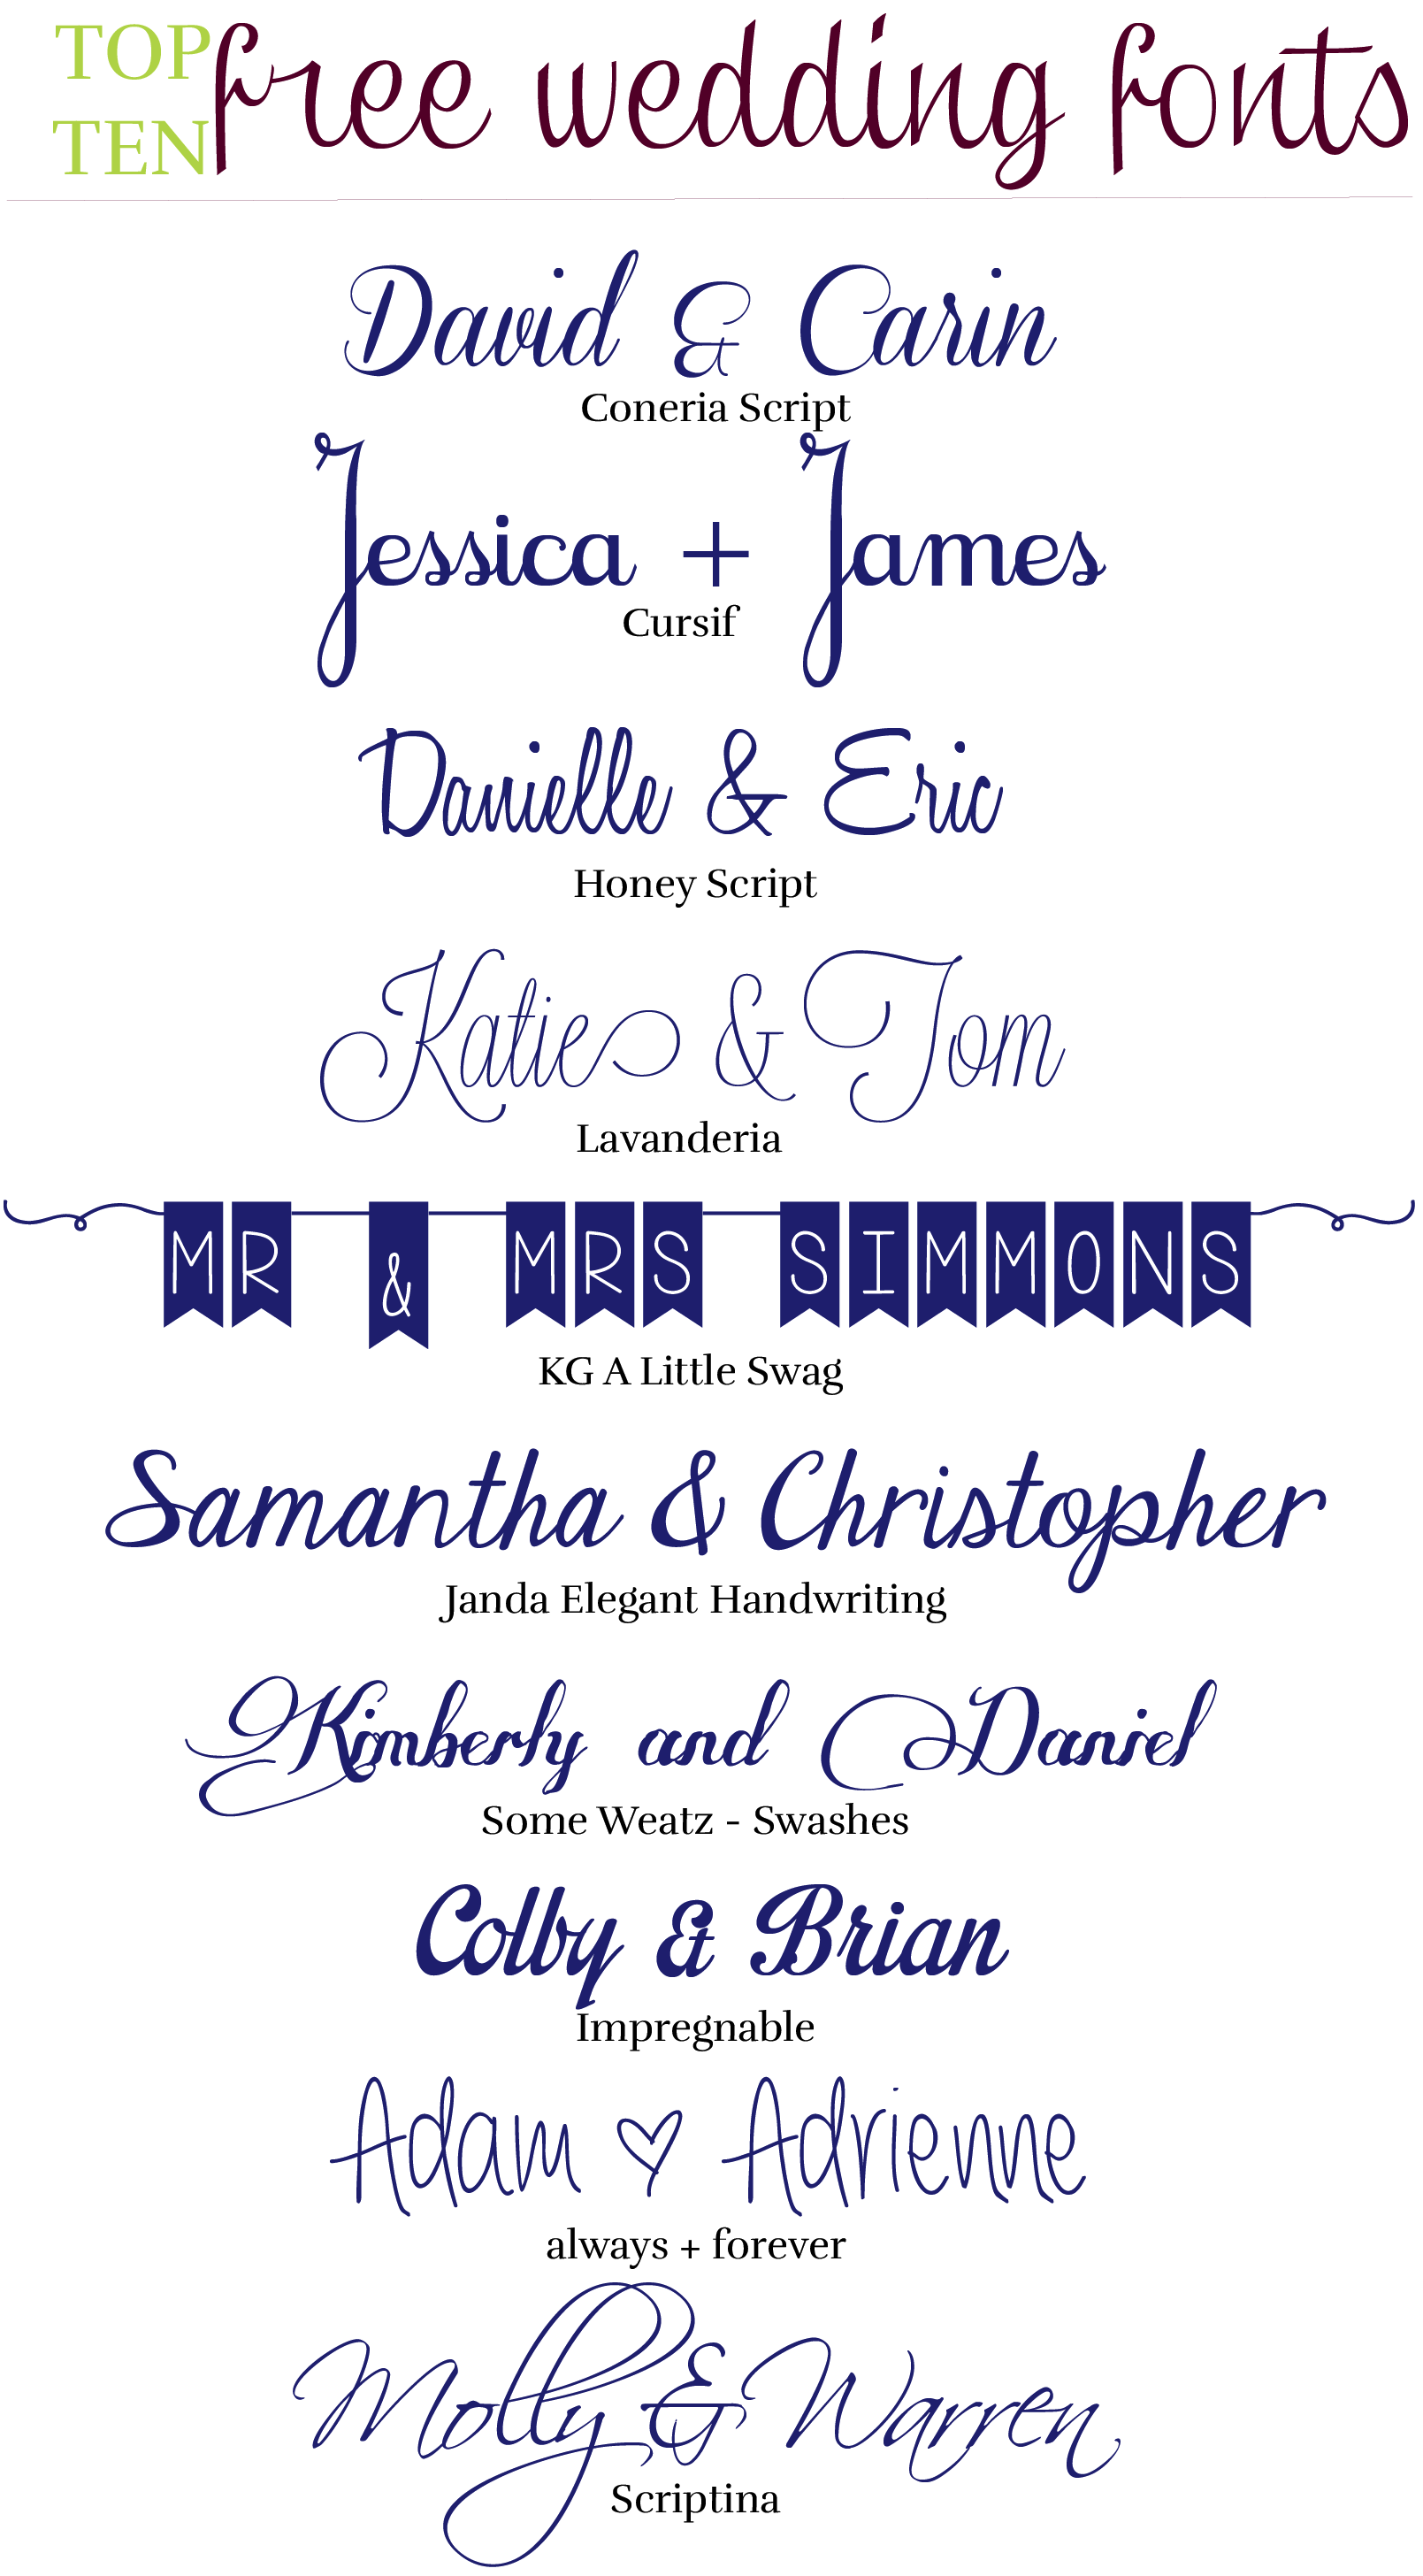 10 Free Wedding Fonts The Event Crashers libros Pinterest